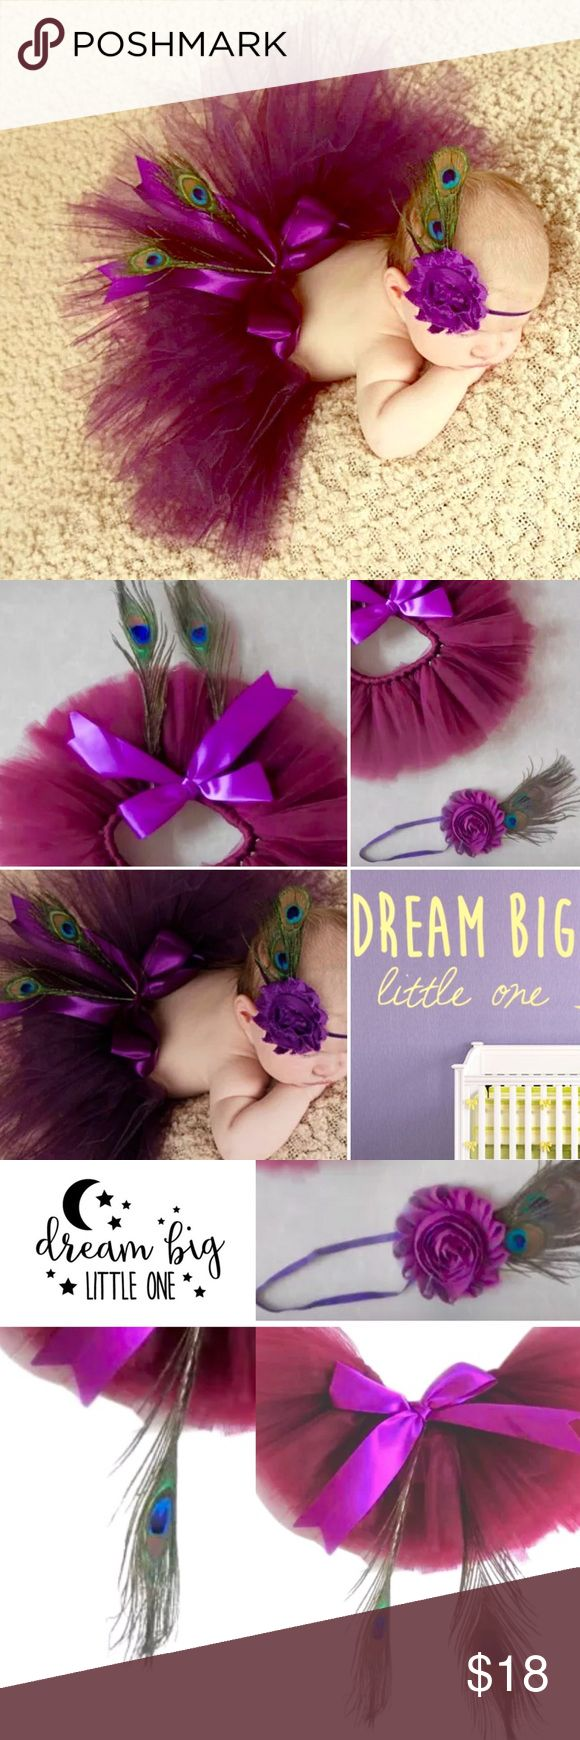 Baby tutu Peacock feather gift set plum purple NB Welcome to Dream BIG Boutique! This posting is for 1 Baby Peacock Too-Too Cute Gift Set This photo Prop outfit includes a Tutu, headband & 3 Peacock feathers! GREAT photo prop & A CUSTOMER FAVORITE! Boutique Quality ~ You will receive this gift set NEW & exactly as photographs show, gift packaged! Perfect GRAB N GO Baby Shower Gift for baby girl :) Main Color is Plum purple One Size ~ Crafted for Baby Girls Newborn-3 months Handmade Matching…